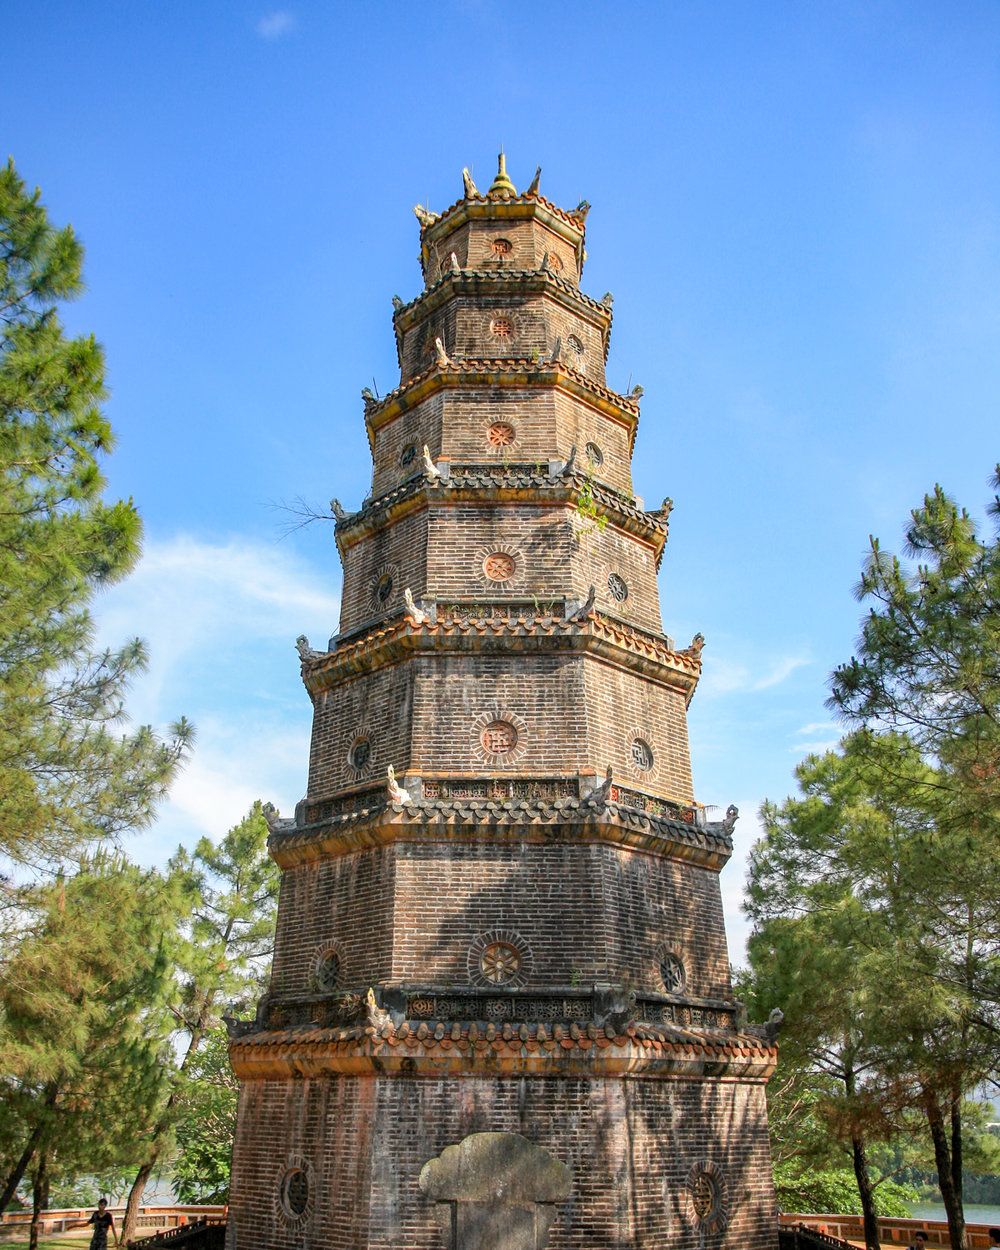 The picturesque Thien Mu Pagoda in Hue